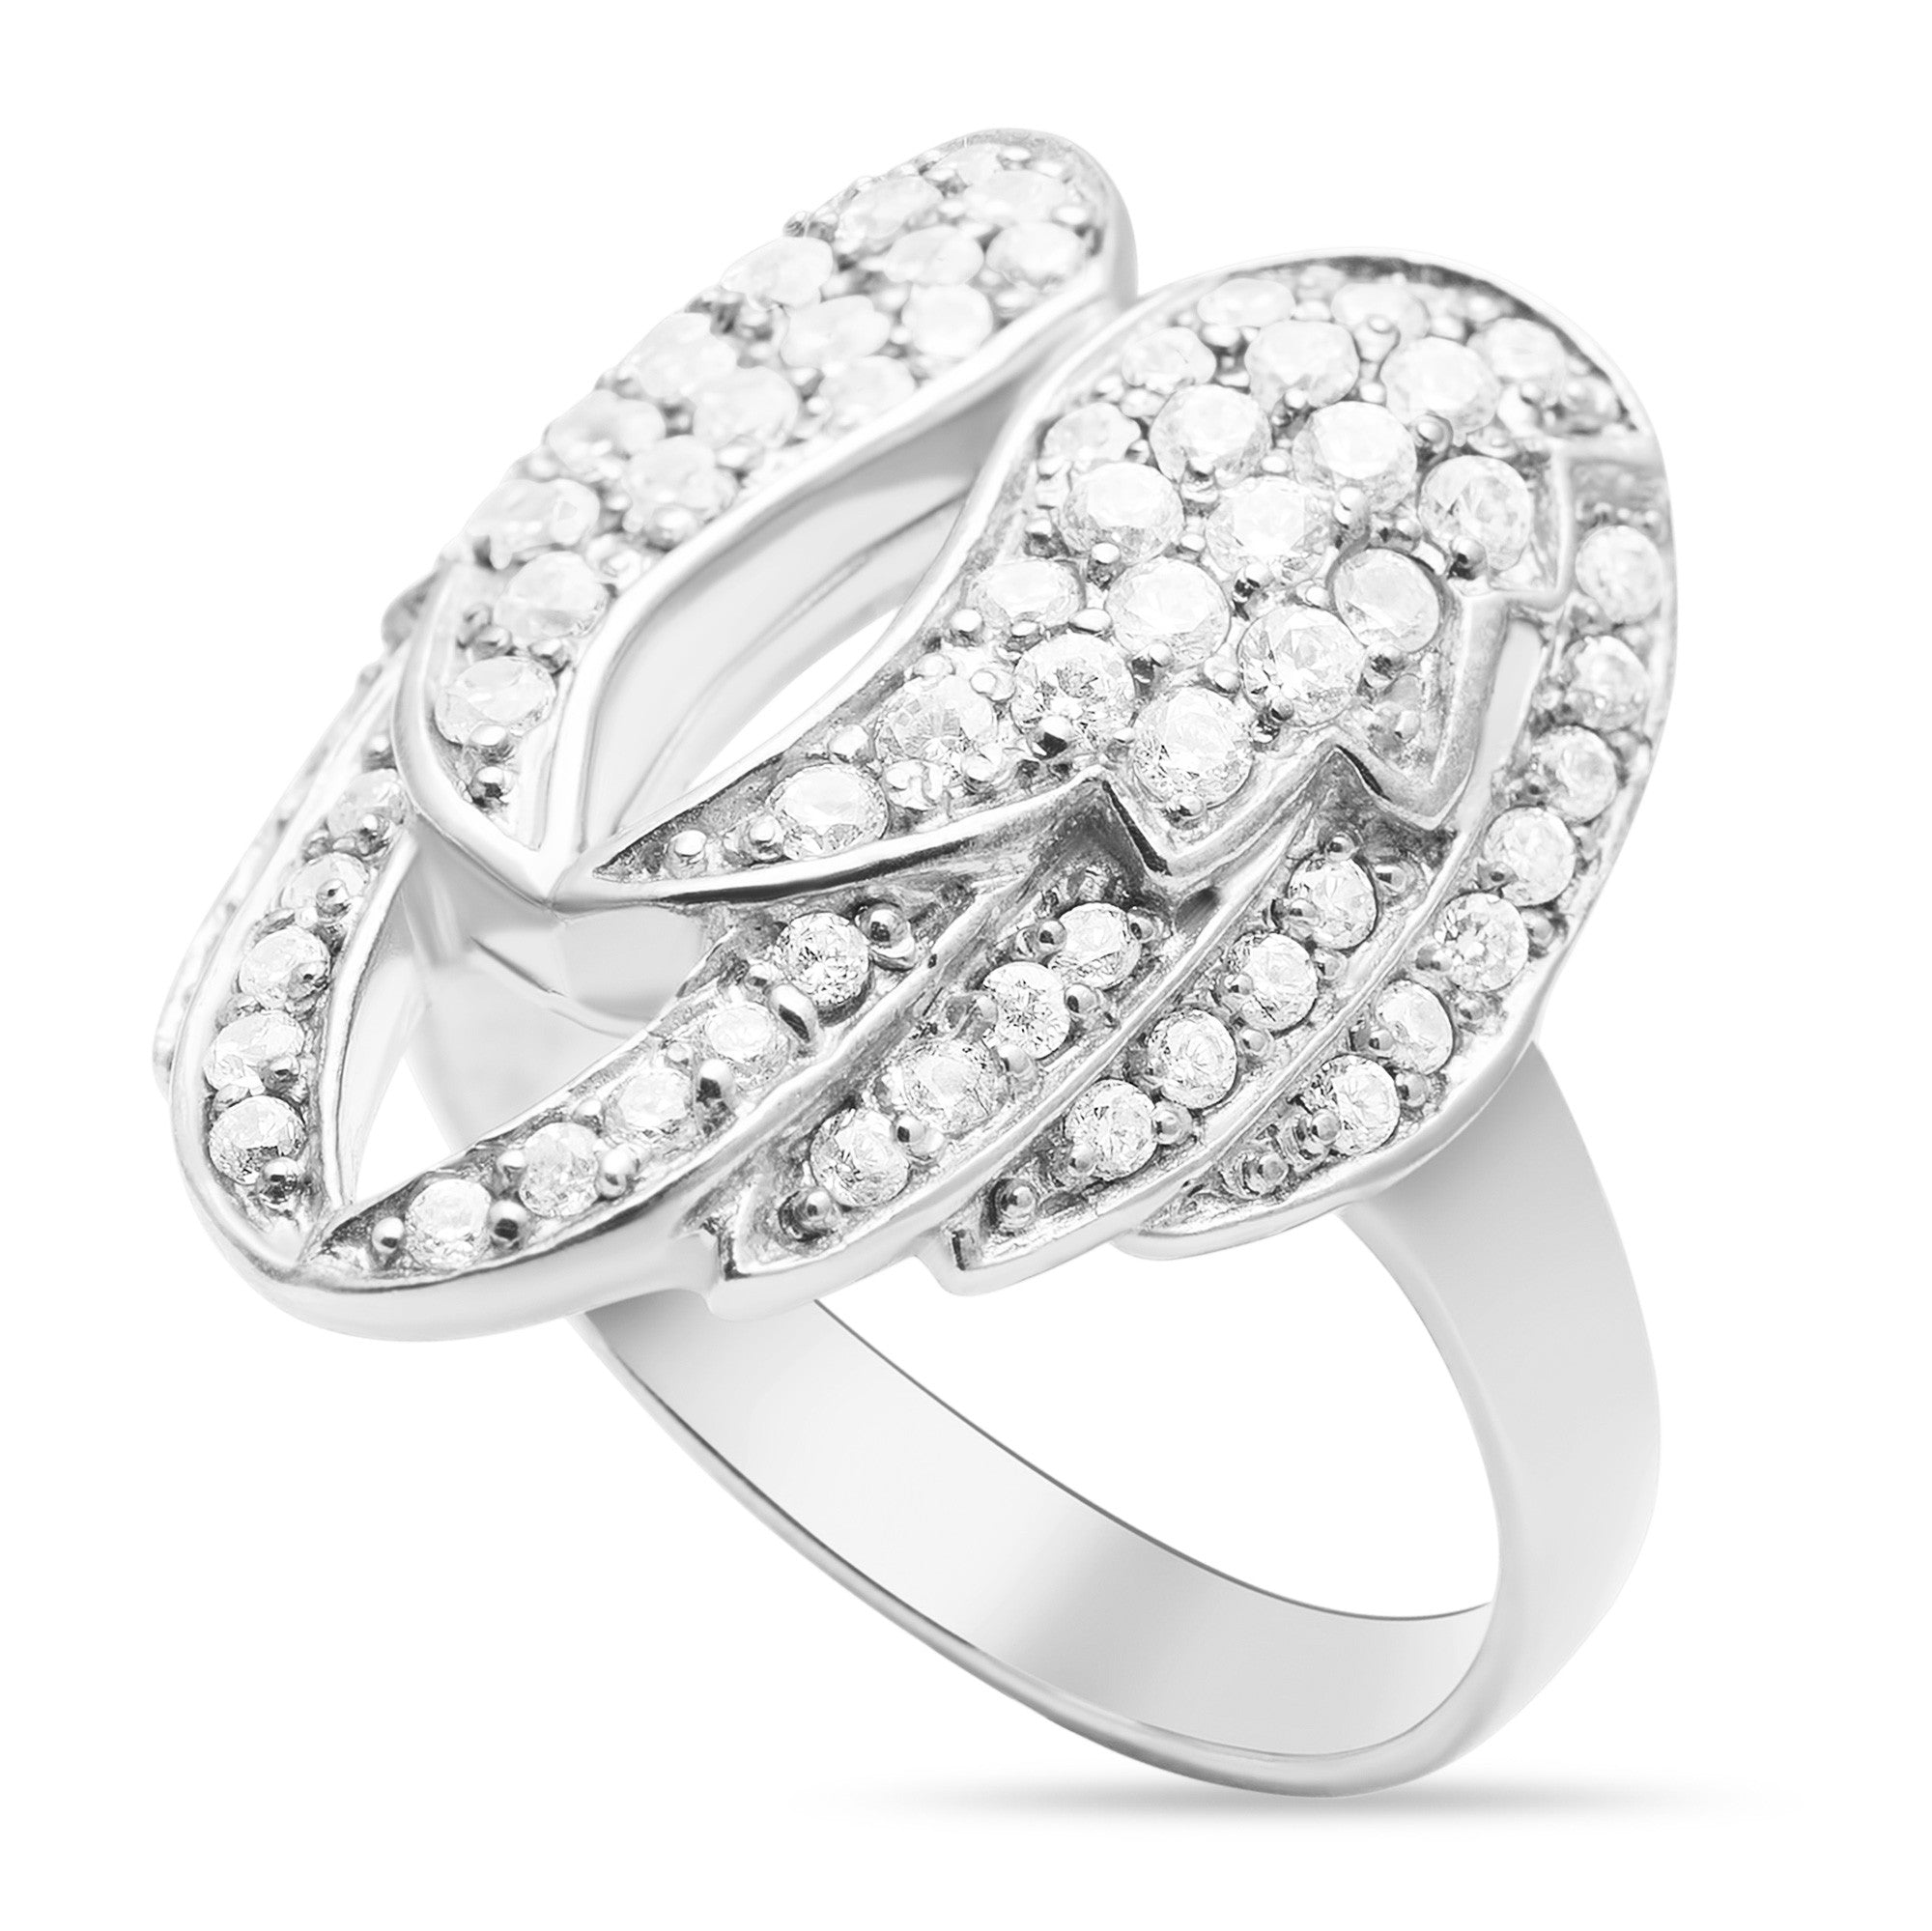 of fairy singapore cute uk platinum diamond wedding ywsghoc rings london engagement unique best